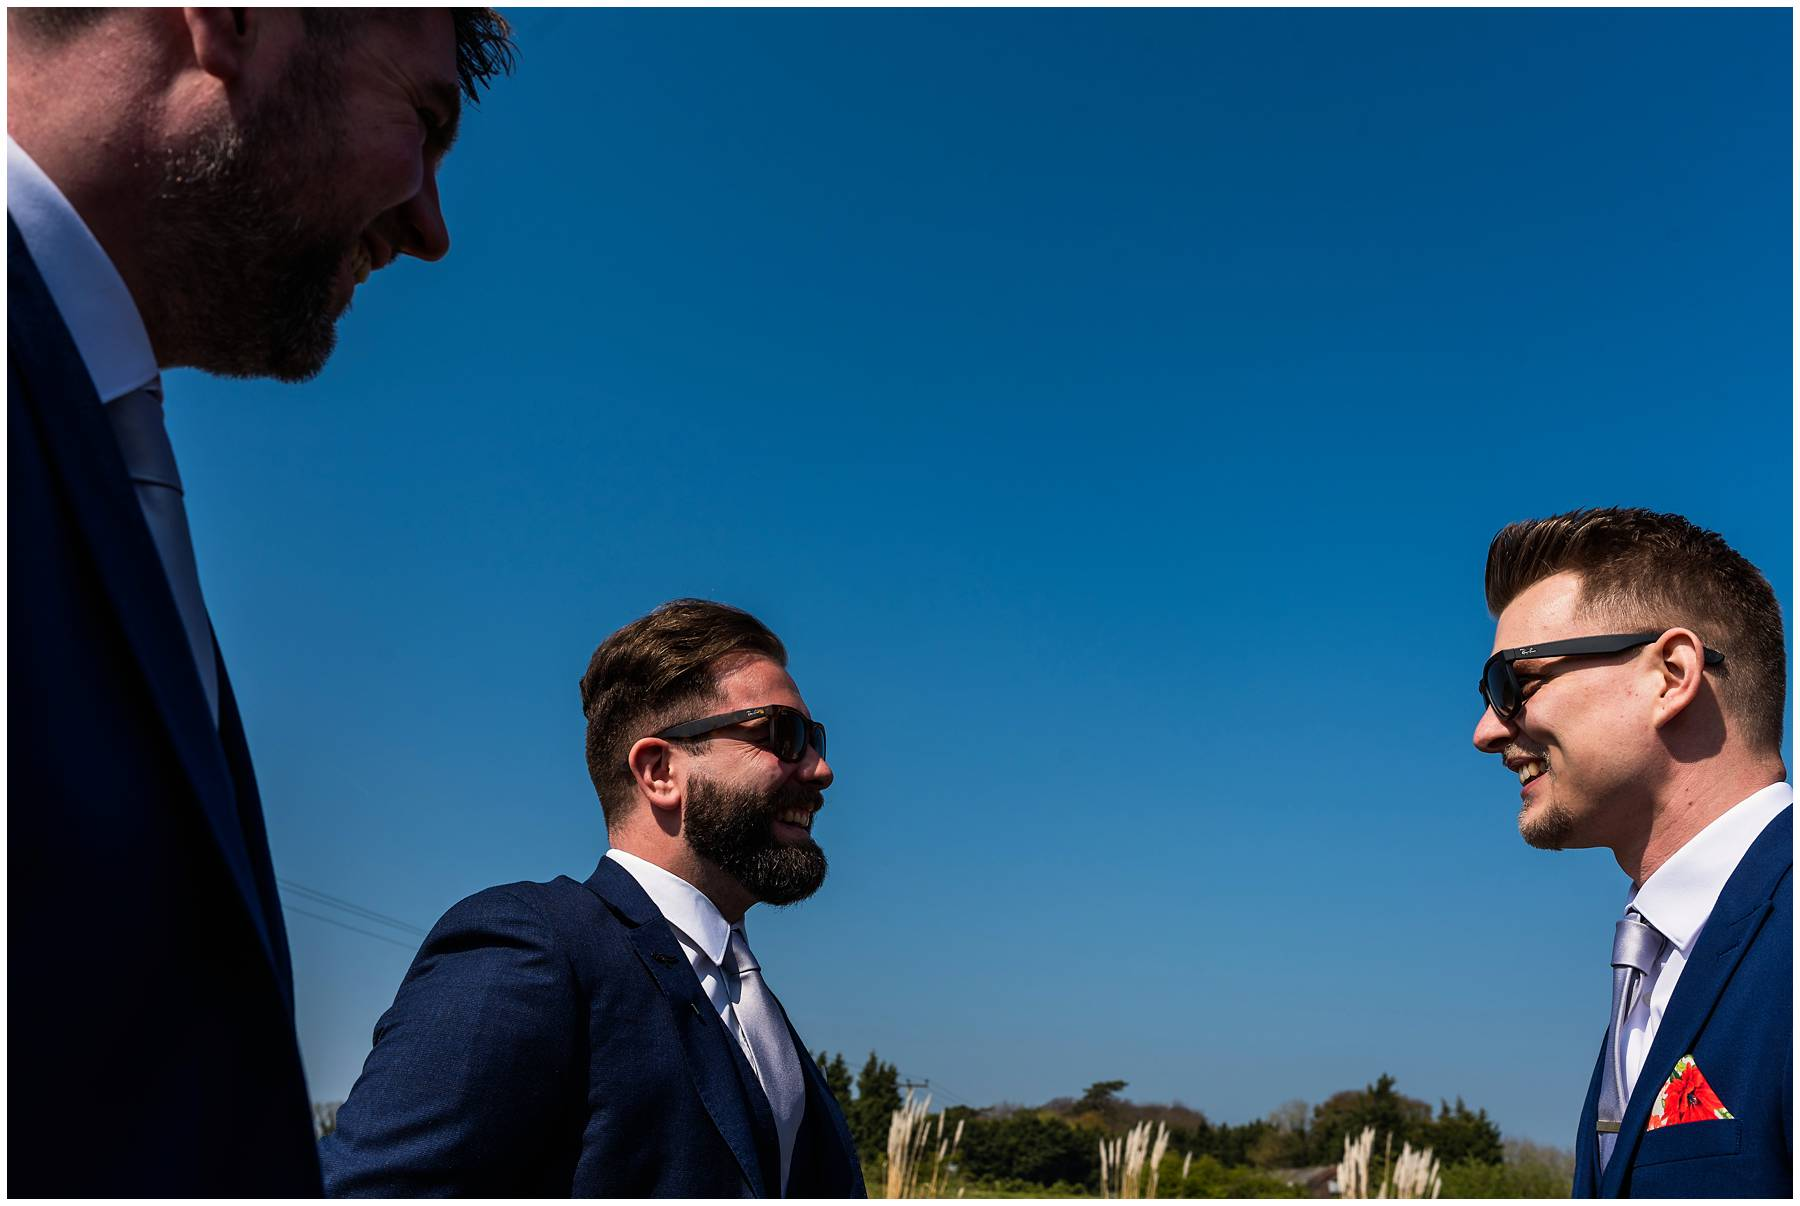 Groom and Groomsmen at The Winding House